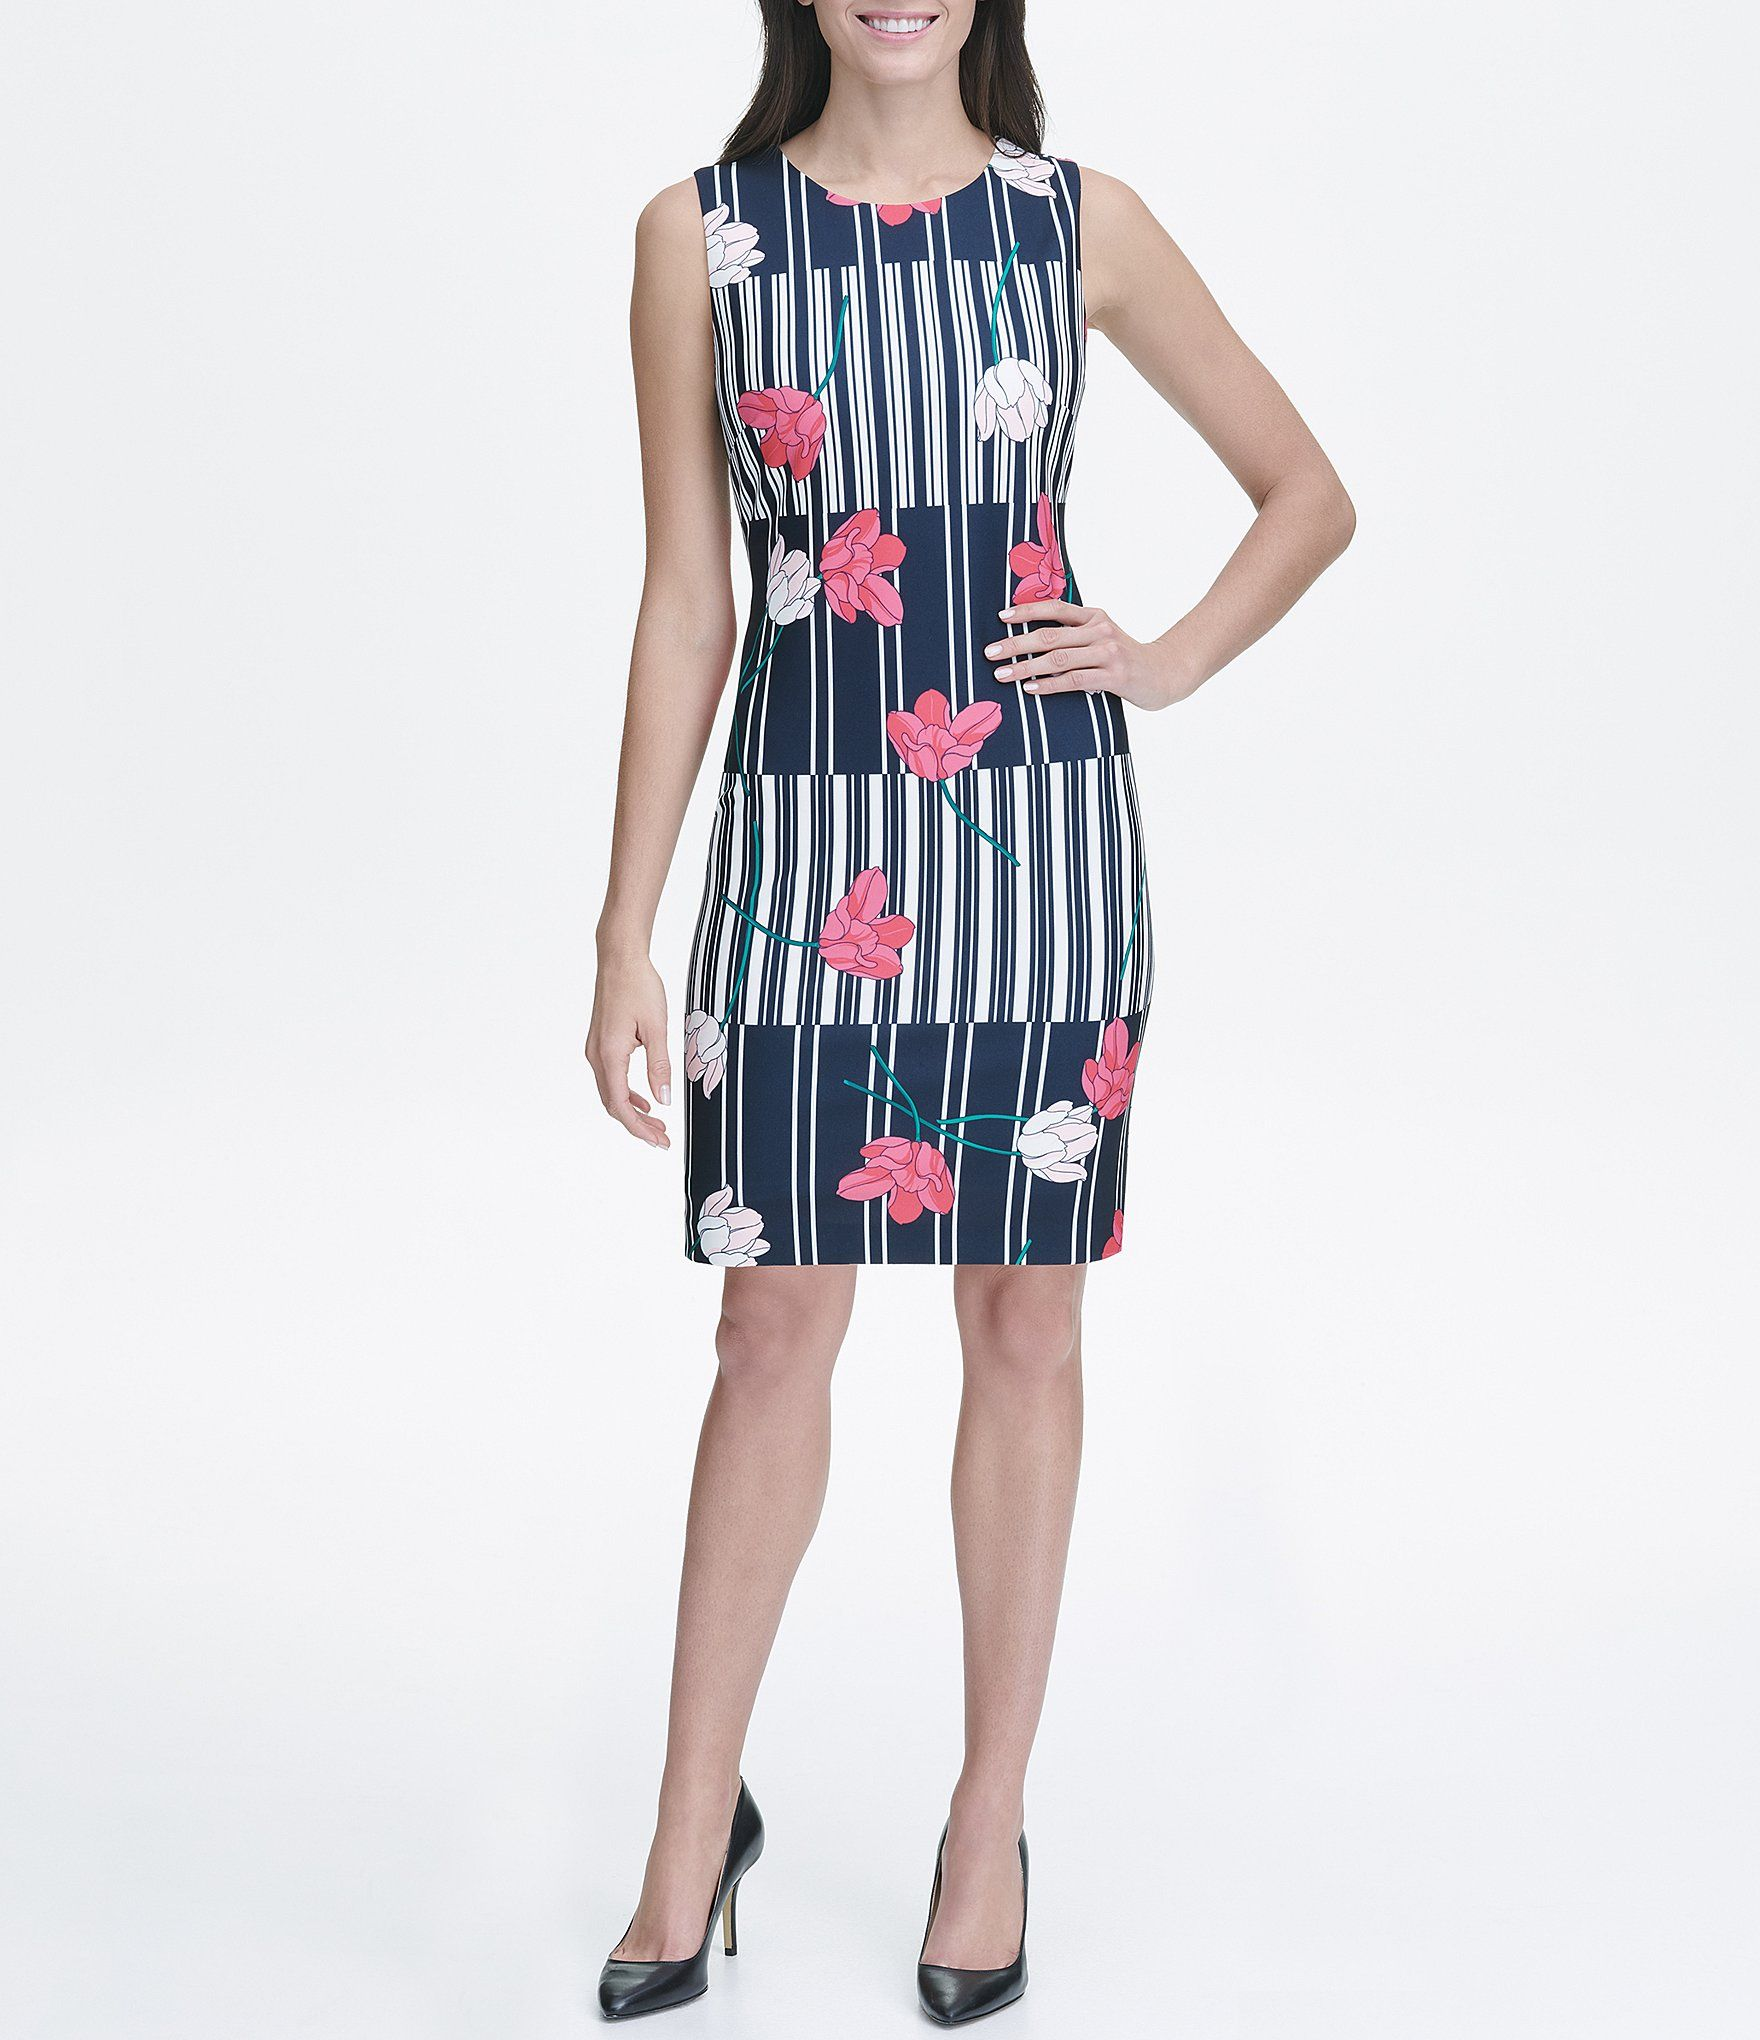 9ed99f066441 Shop for Tommy Hilfiger Mixed Stripe Floral Print Scuba Crepe Sleeveless Sheath  Dress at Dillards.com. Visit Dillards.com to find clothing, accessories, ...